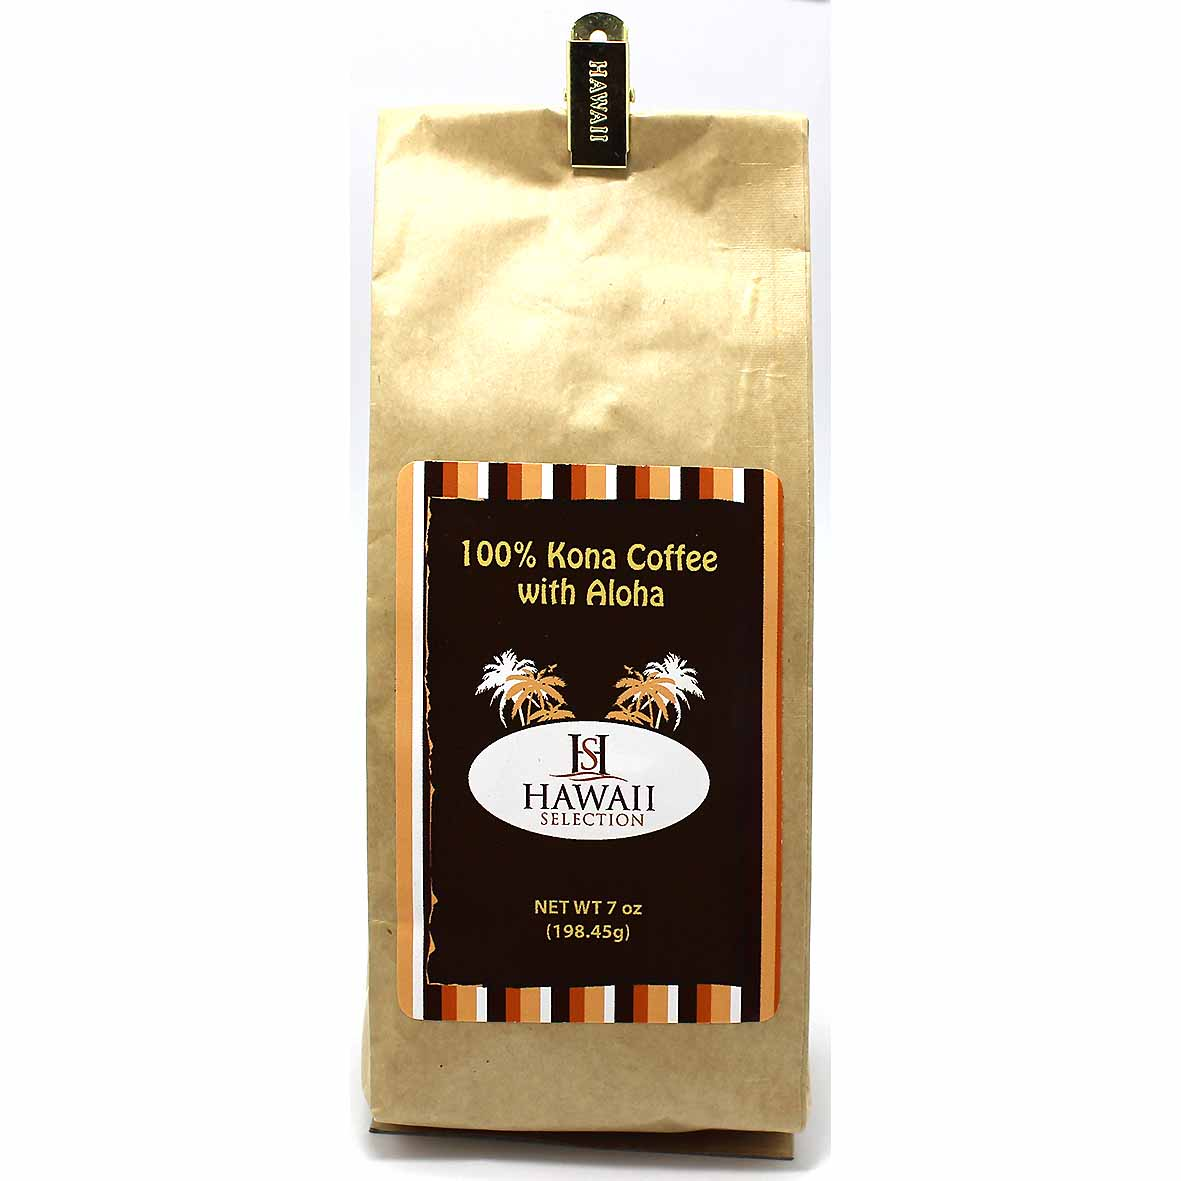 �h�����N�E��i/ �yHAWAII SELECTION�z KONA COFFEE 100% / �R�i�R�[�q�[ 7oz